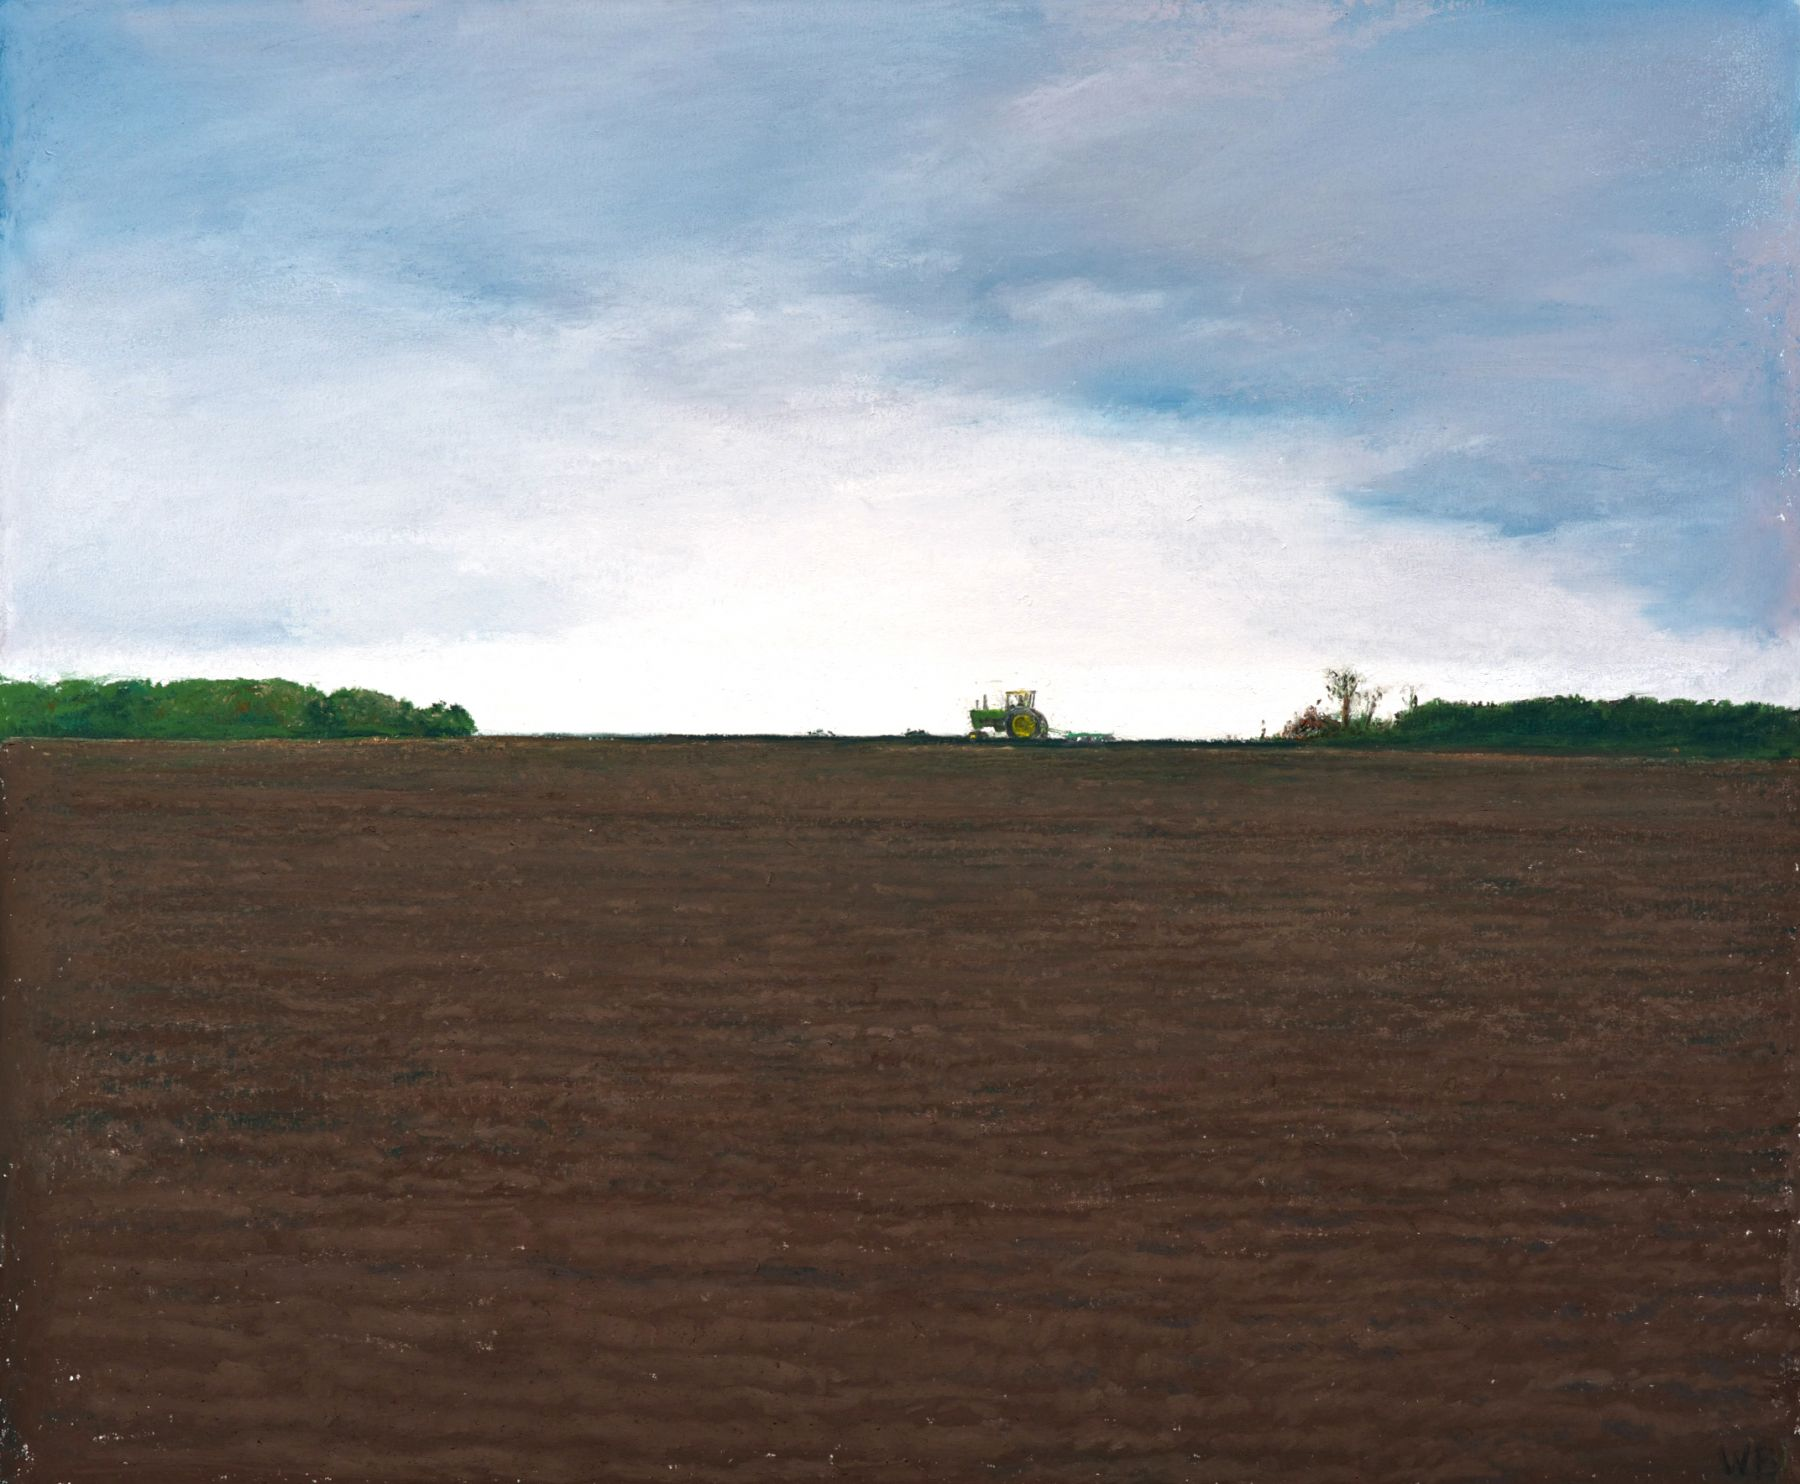 william beckman, John Deere 1, 2014, pastel on paper, image: 20 1/4 x 24 1/4 inches, paper: 24 x 1/4 x 28 1/4 inches